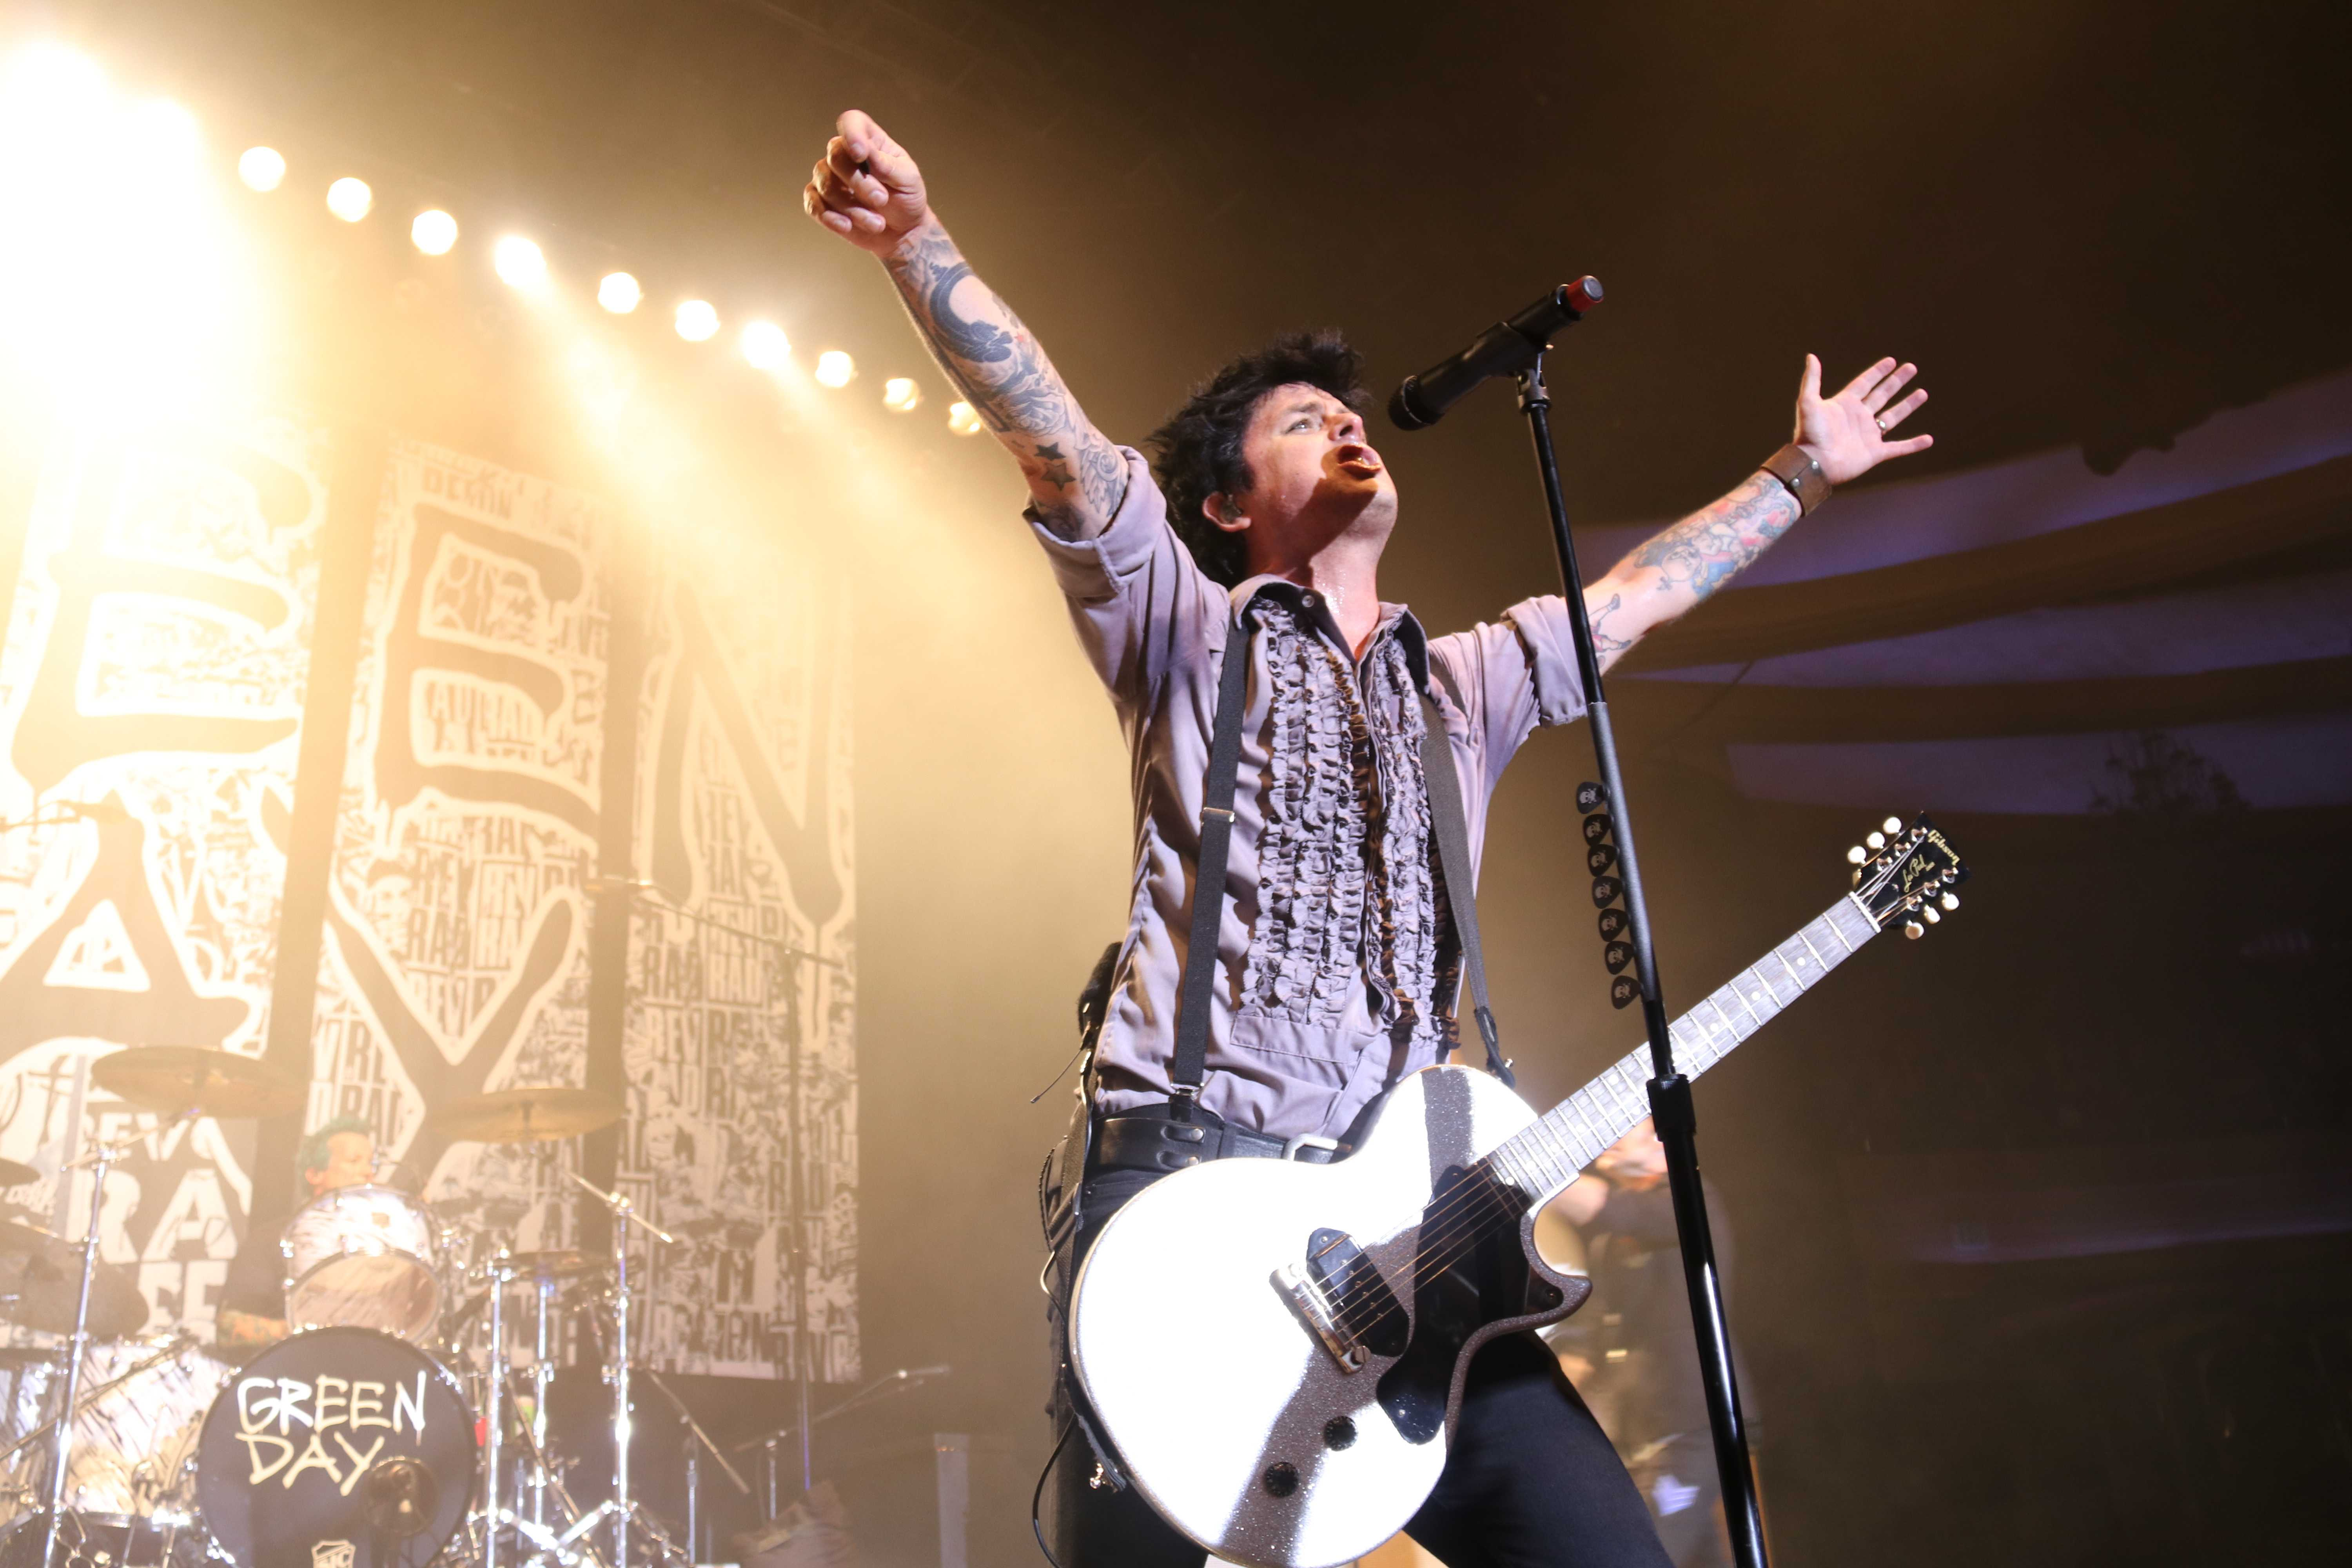 Billie Joe Armstrong raises his hands while performing a song